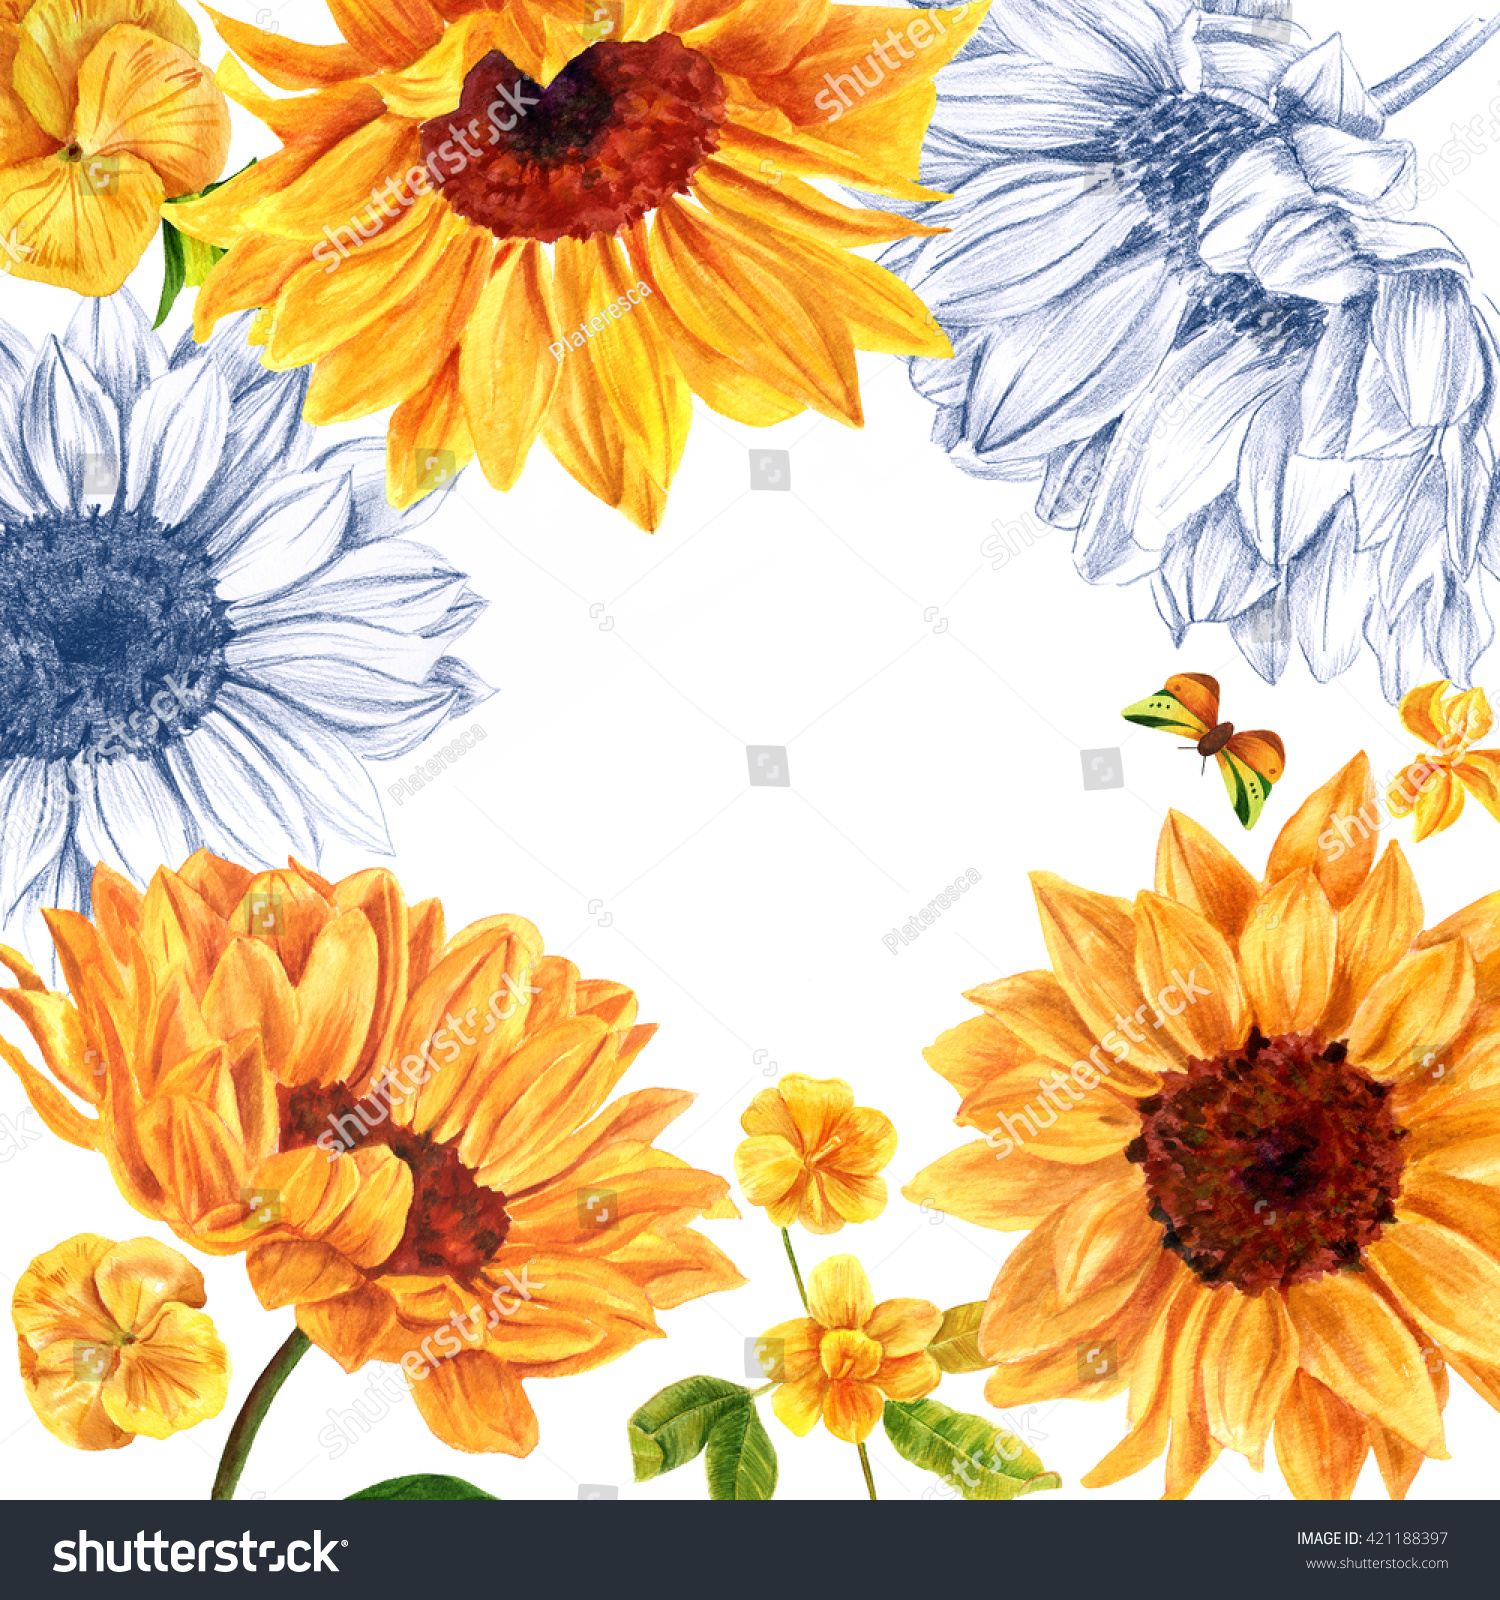 Frame watercolor pencil drawings yellow flowers stock illustration a frame of watercolor and pencil drawings of yellow flowers sunflowers violets and izmirmasajfo